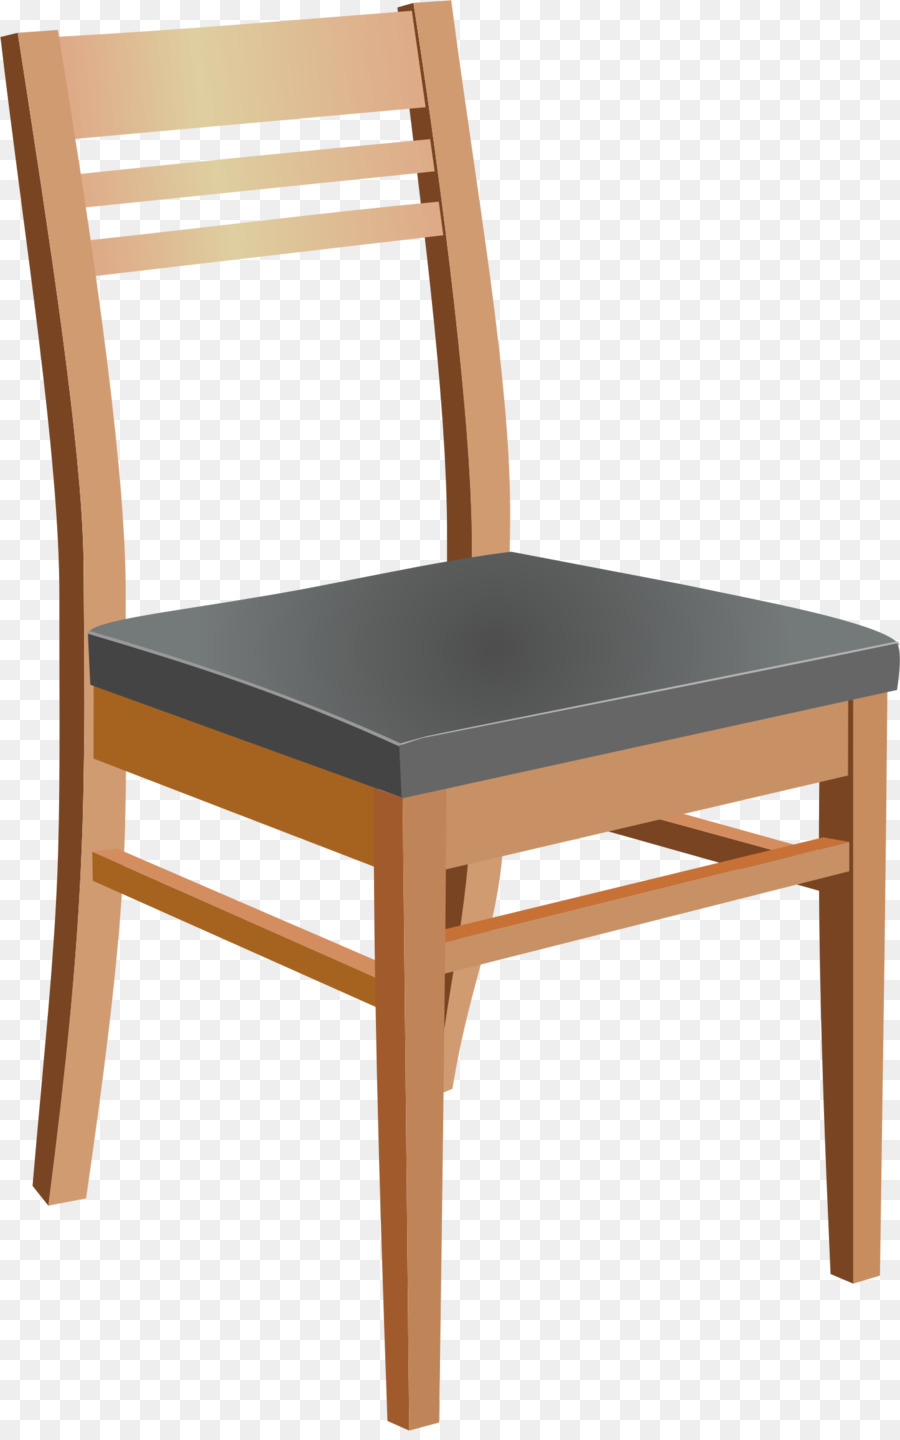 Transparent chair clipart png royalty free download Wood Table clipart - Table, Chair, Furniture, transparent ... png royalty free download